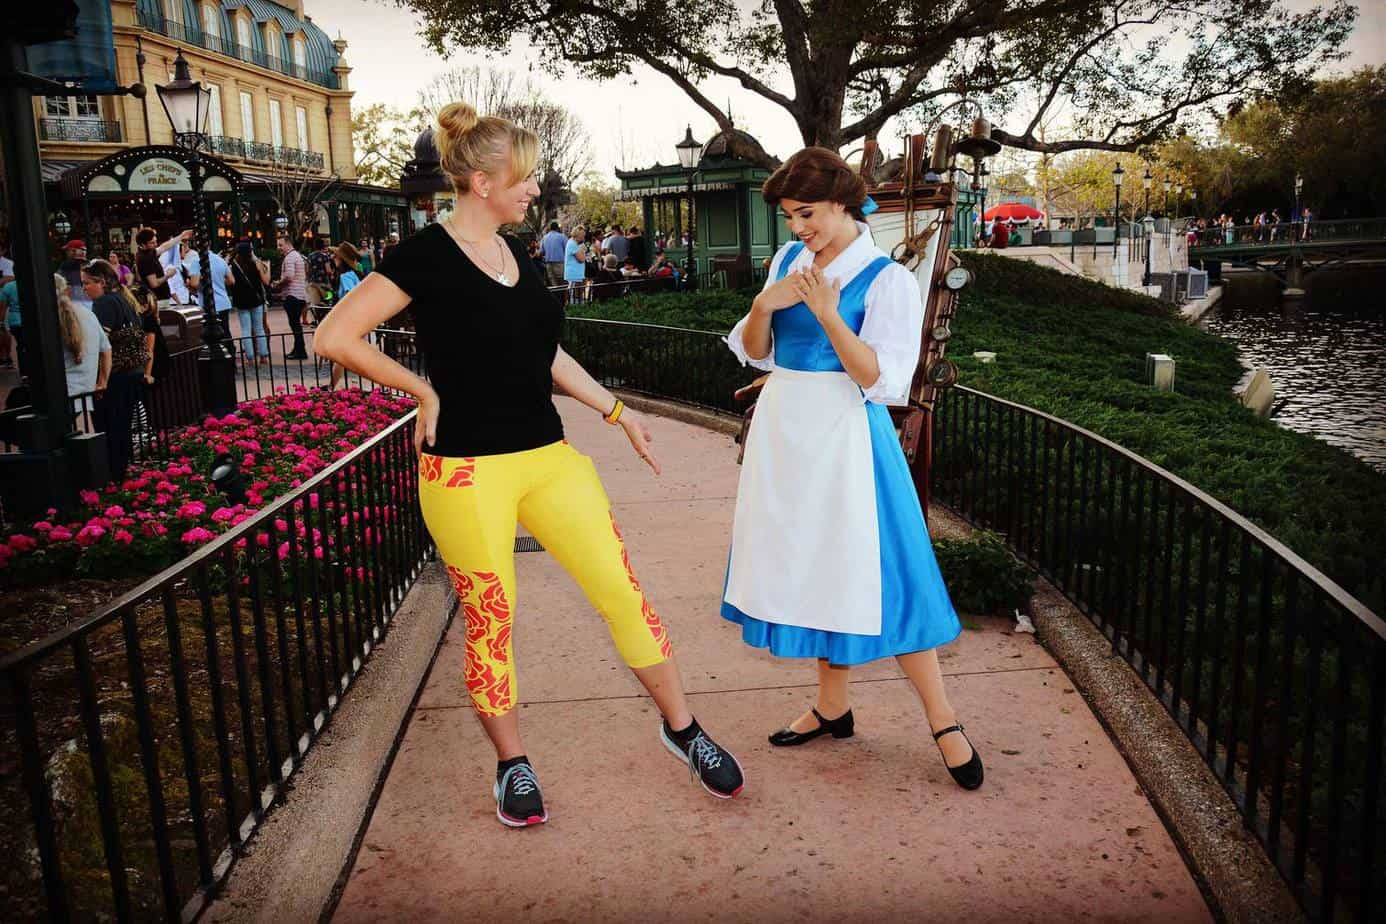 Wish Cricket Beauty and the Beast rose capris in yellow with Belle.